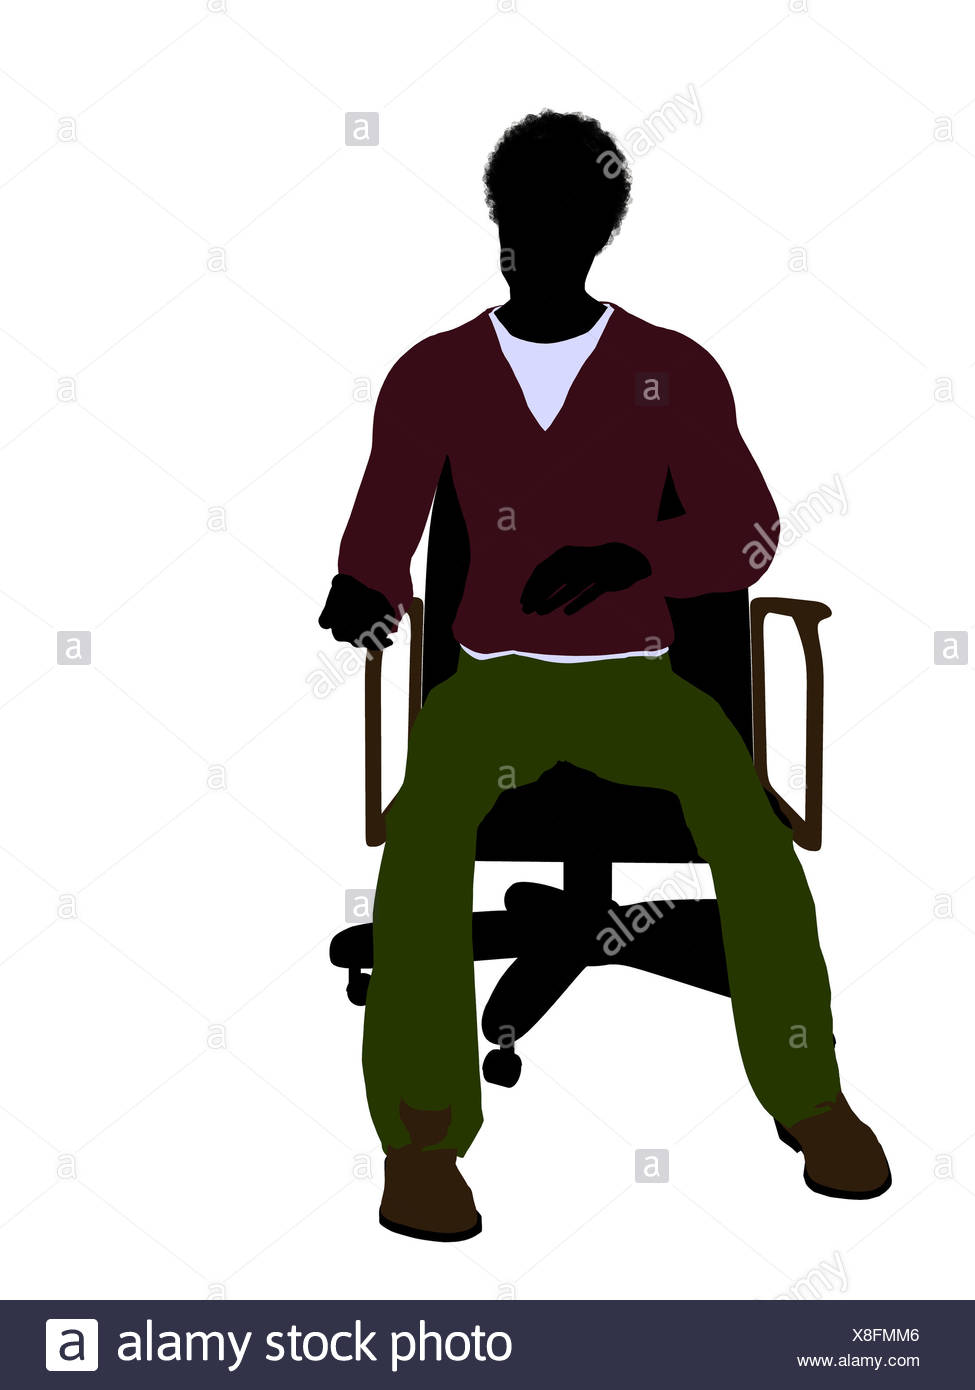 975x1390 Silhouette Man Sitting On Chair Stock Photos Amp Silhouette Man